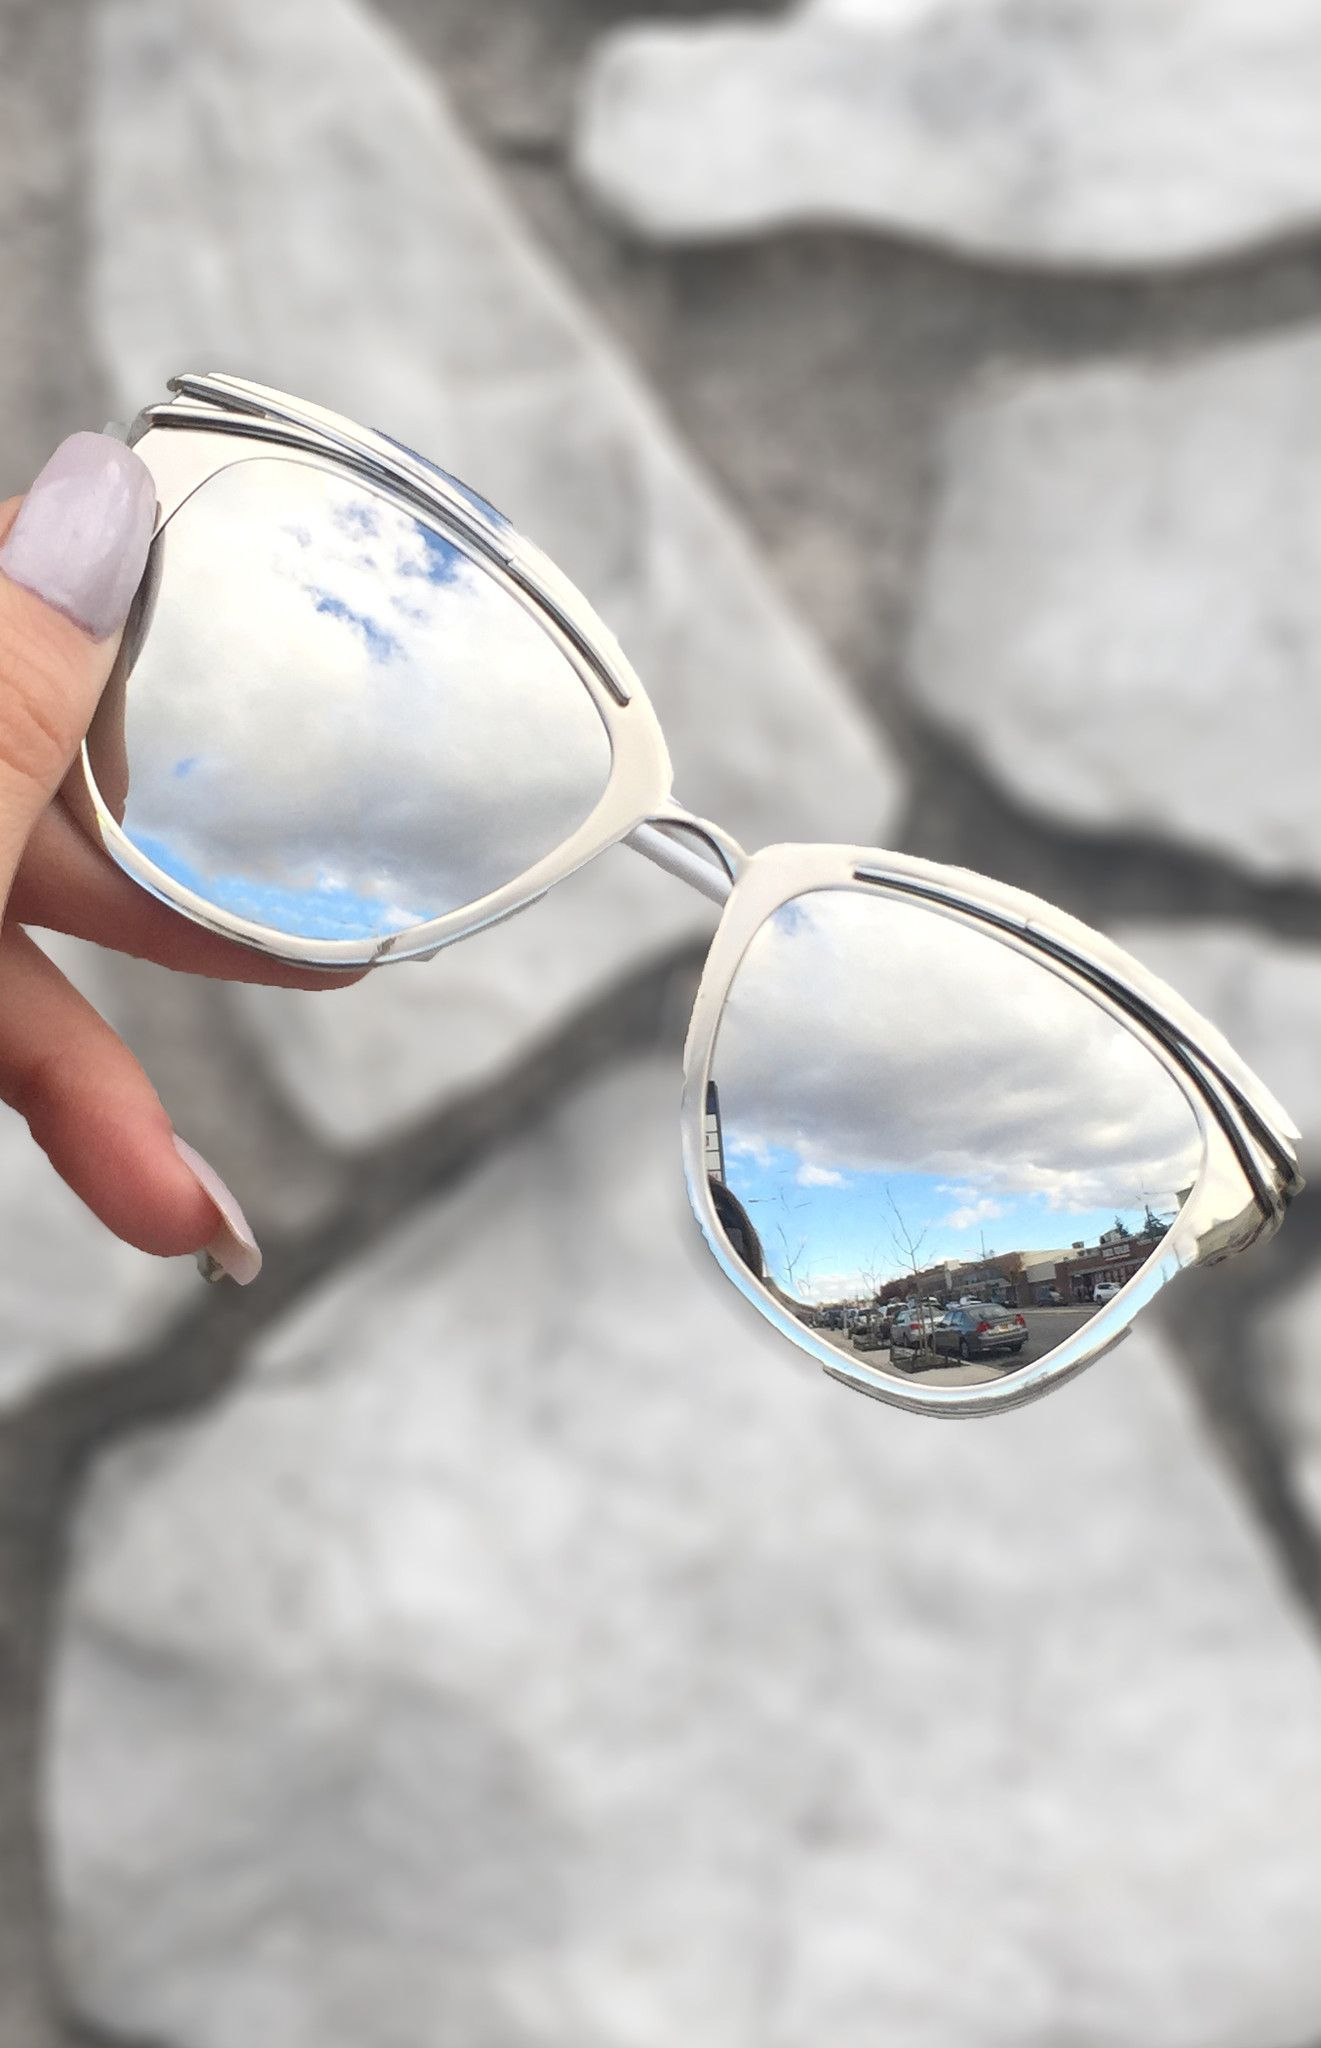 df088147bc Candy Sunnies - Silver Mercury These women Topfoxx Sunglasses are  reflective eyewear in chrome. These are great for different kinds of face  shapes with a ...